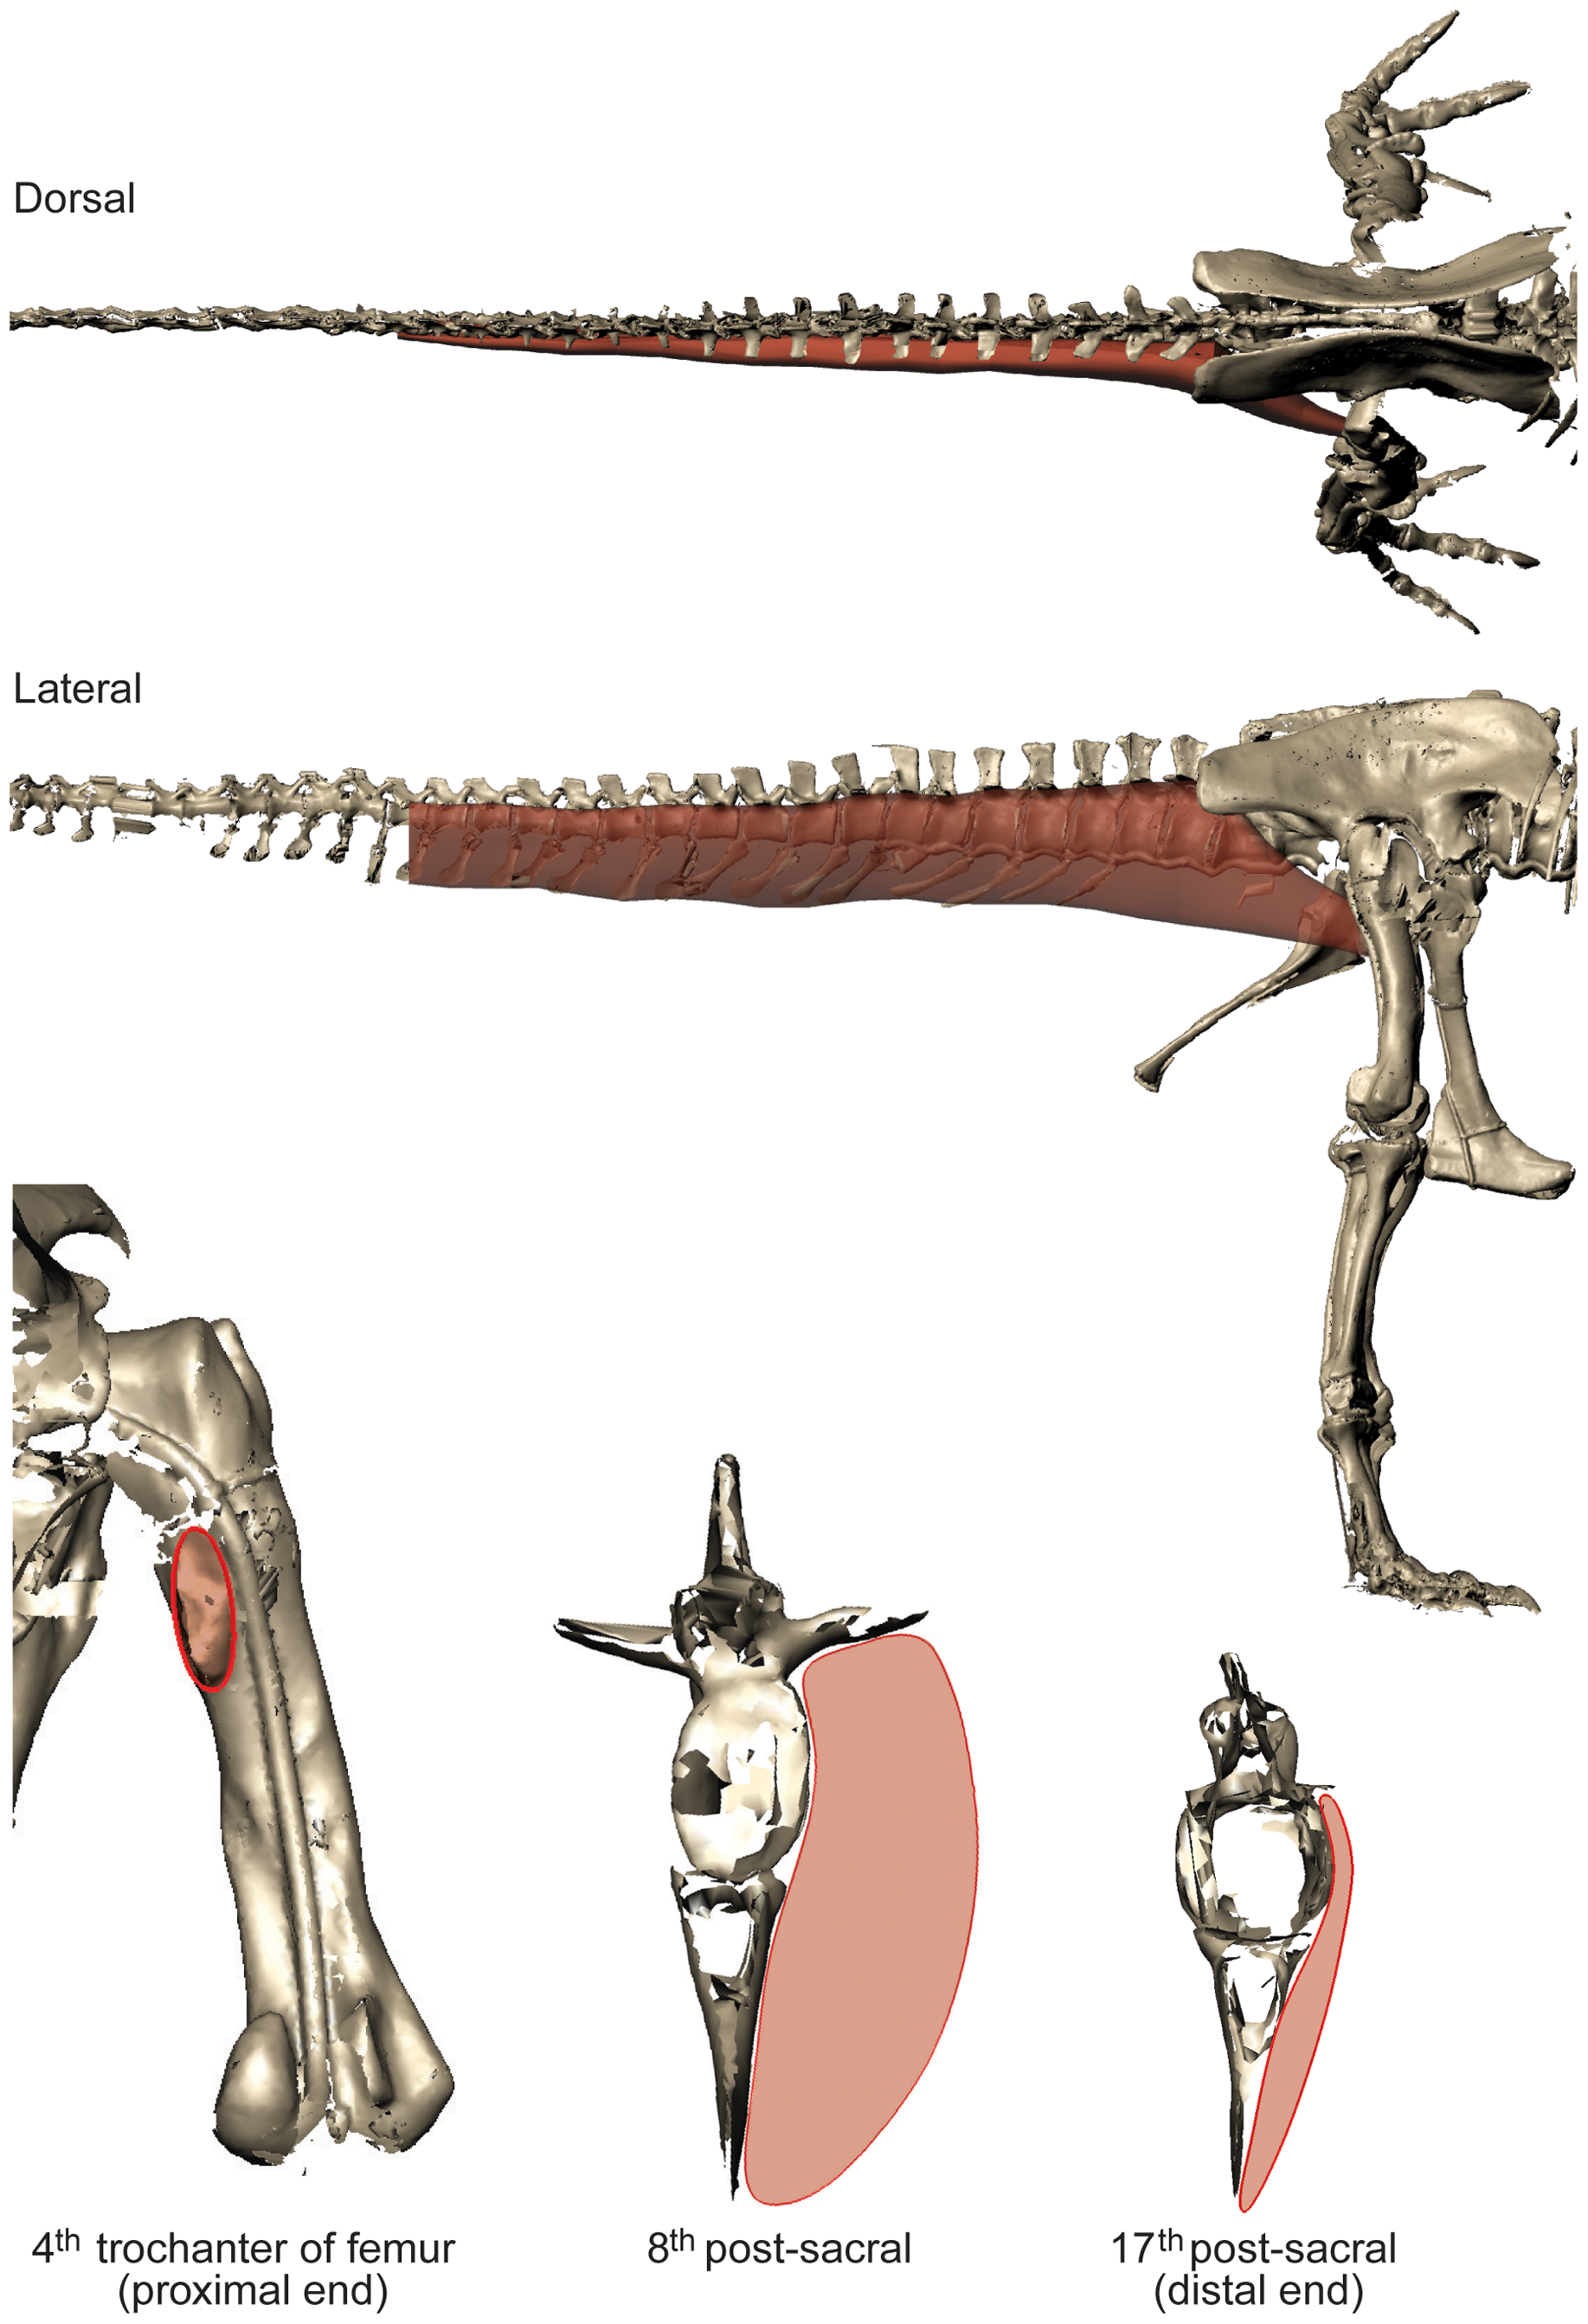 https://upload.wikimedia.org/wikipedia/commons/8/86/Tyrannosaurus_muscle_mass.png